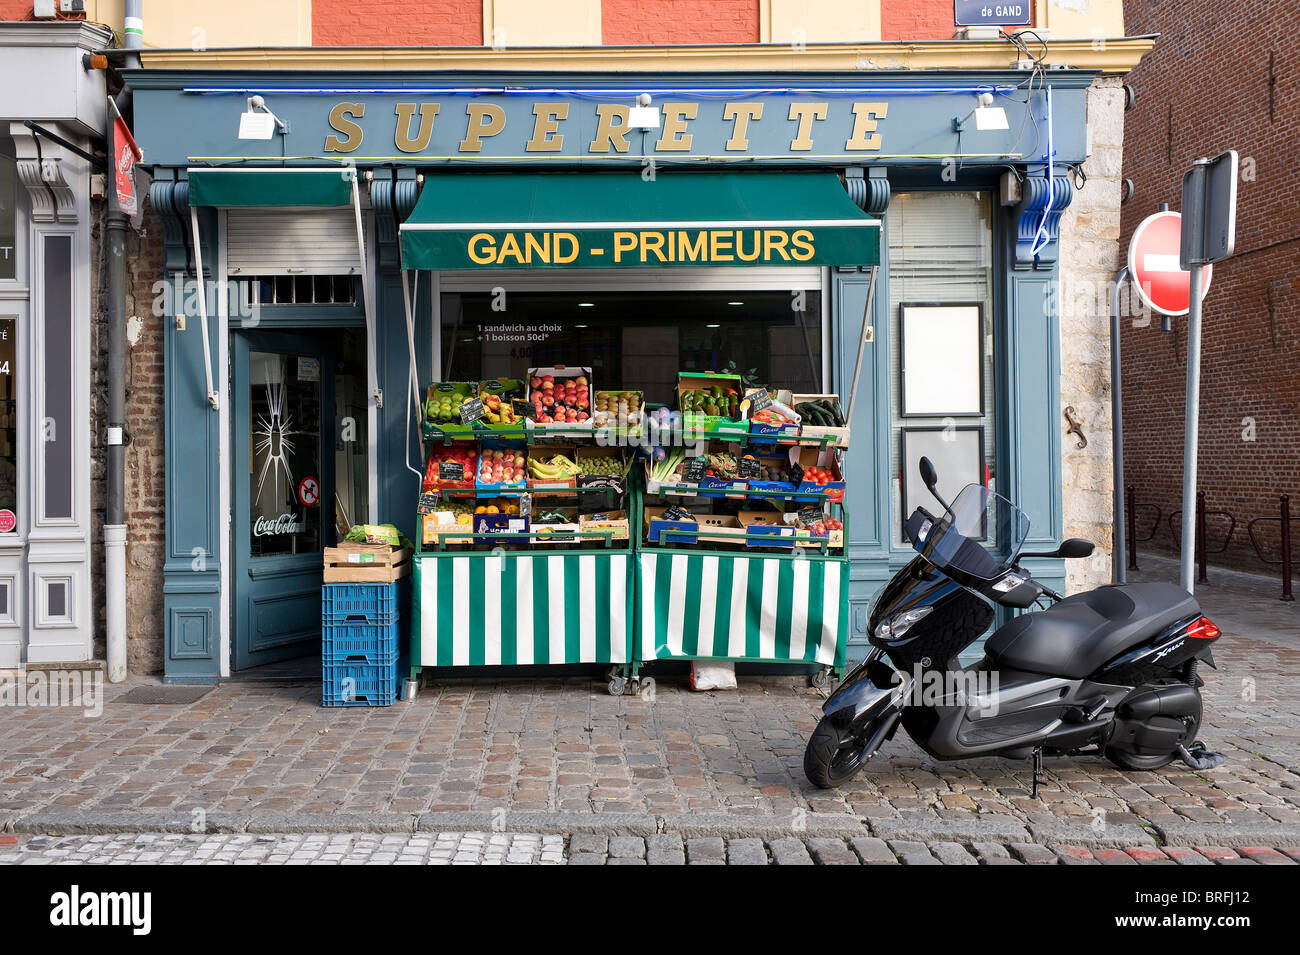 Provision Store Stock Photos & Provision Store Stock Images - Alamy